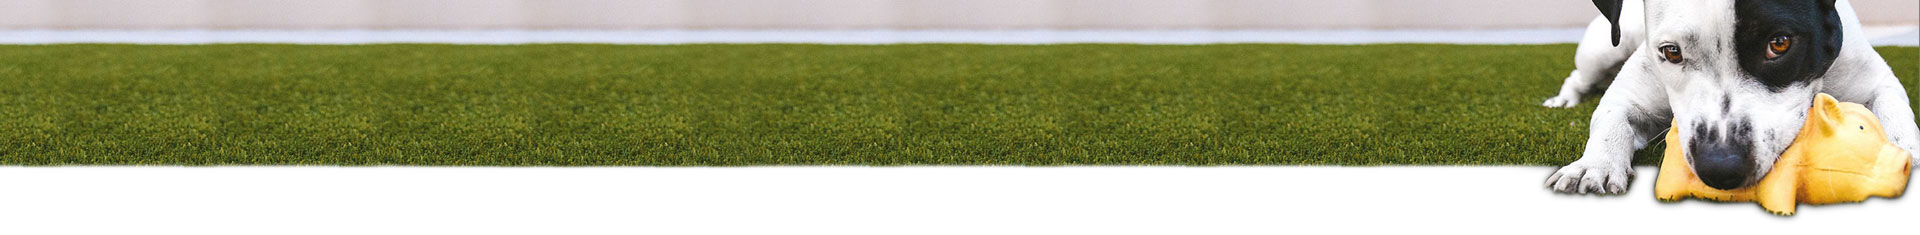 Artificial Grass Video Gallery